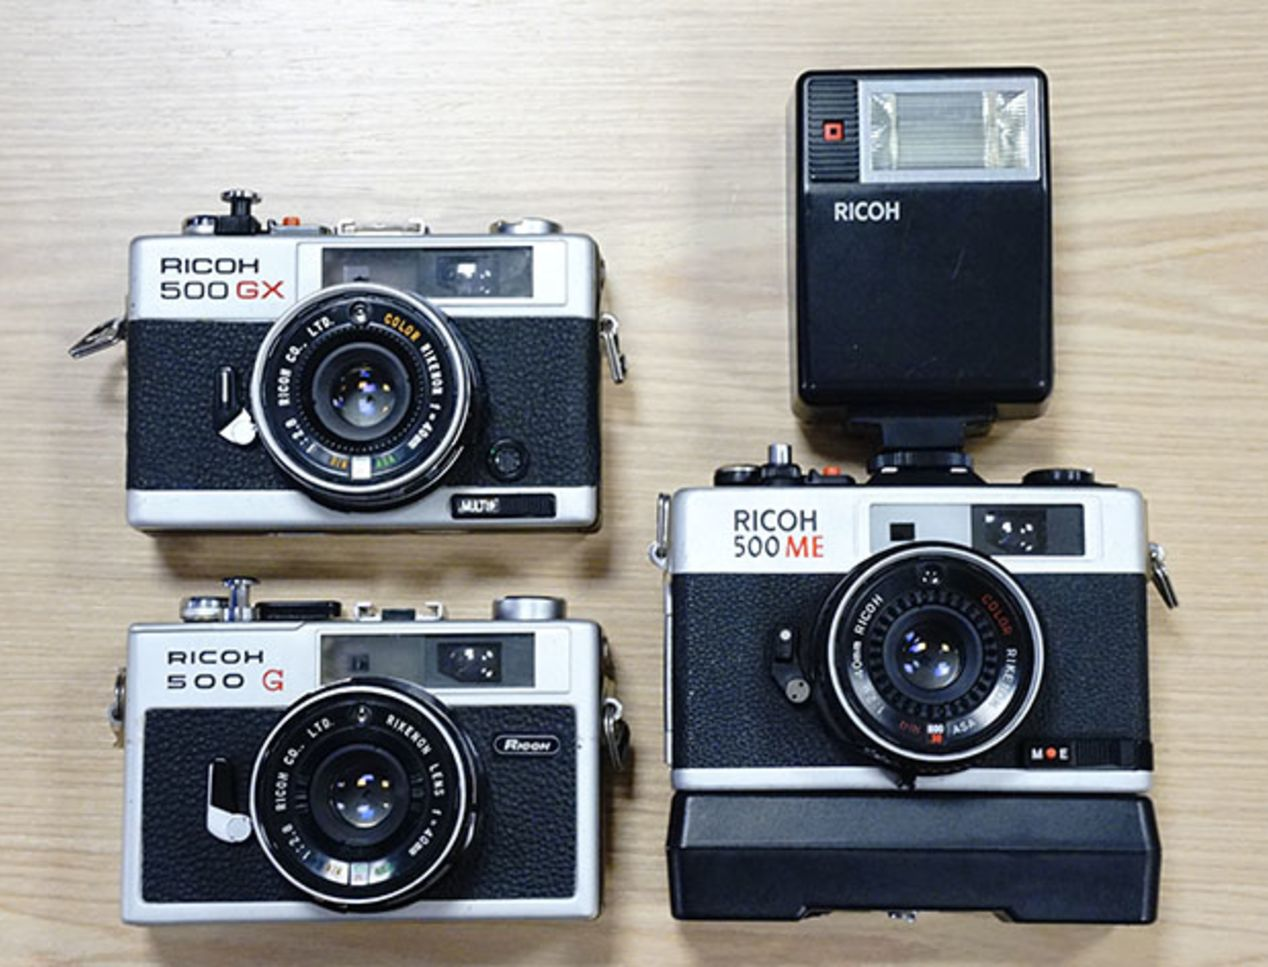 Ricoh 500 series ~$40 or up to $75 with accessories.